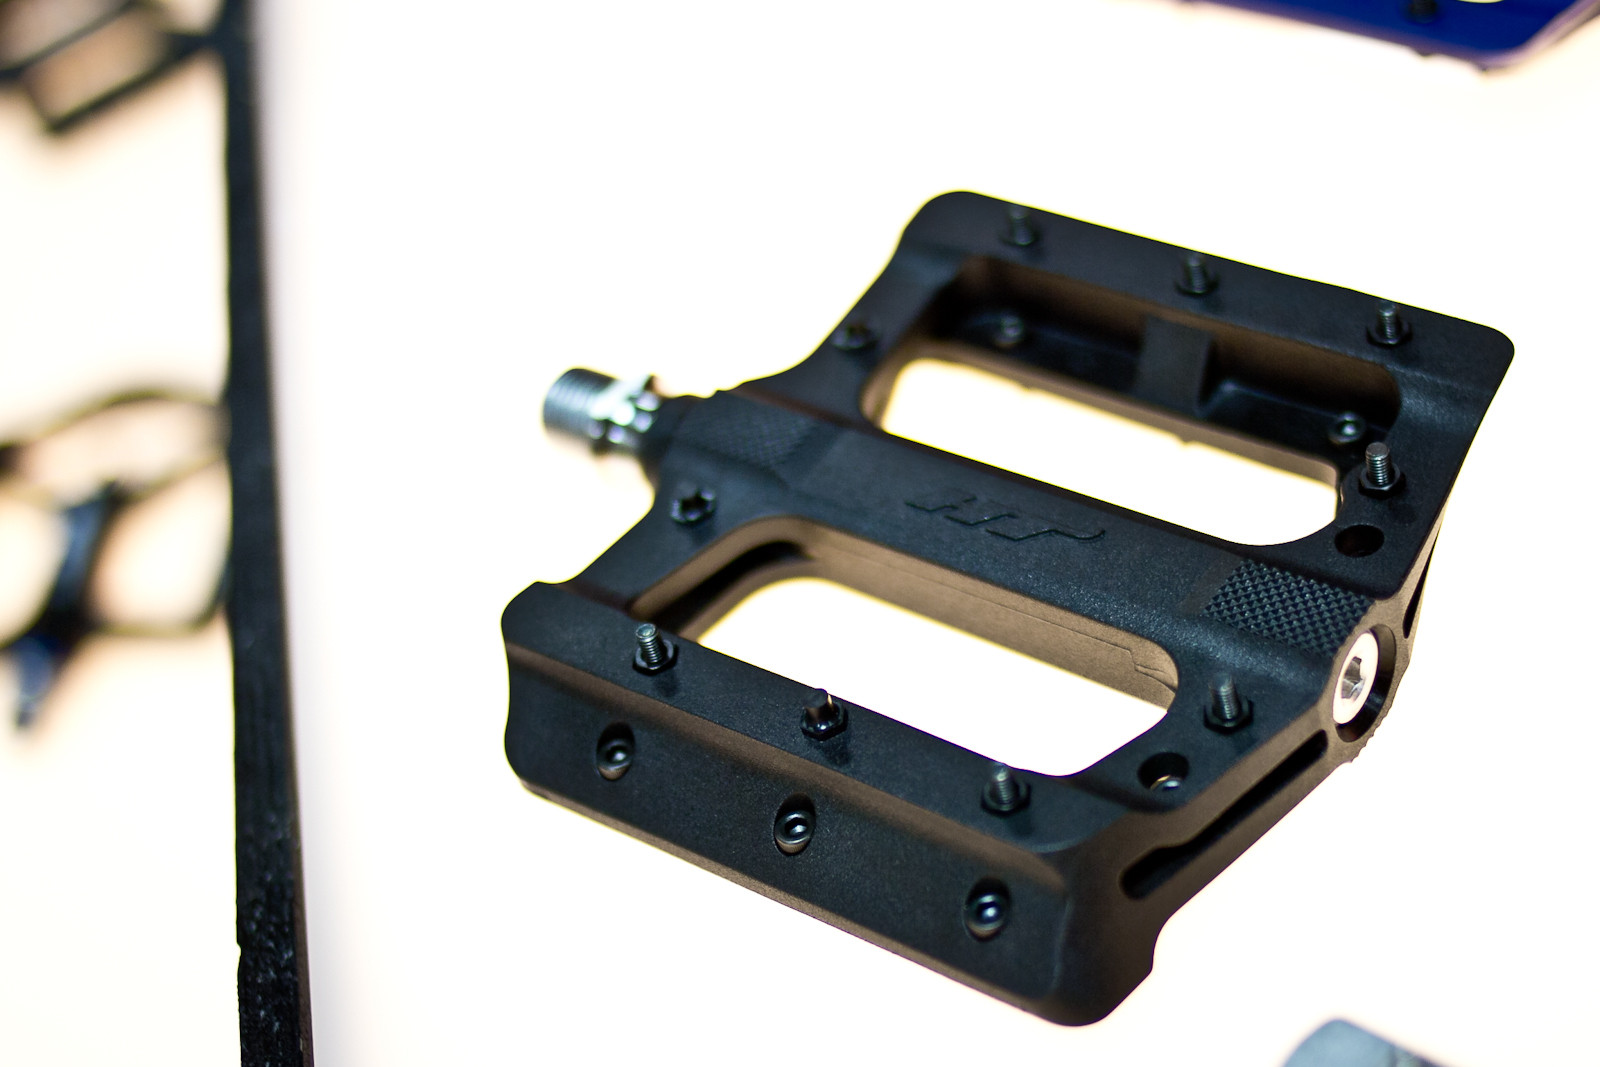 HT PA01A Pedals - INTERBIKE: Part 3 - Hidden Gems & More 2014 Products - Mountain Biking Pictures - Vital MTB